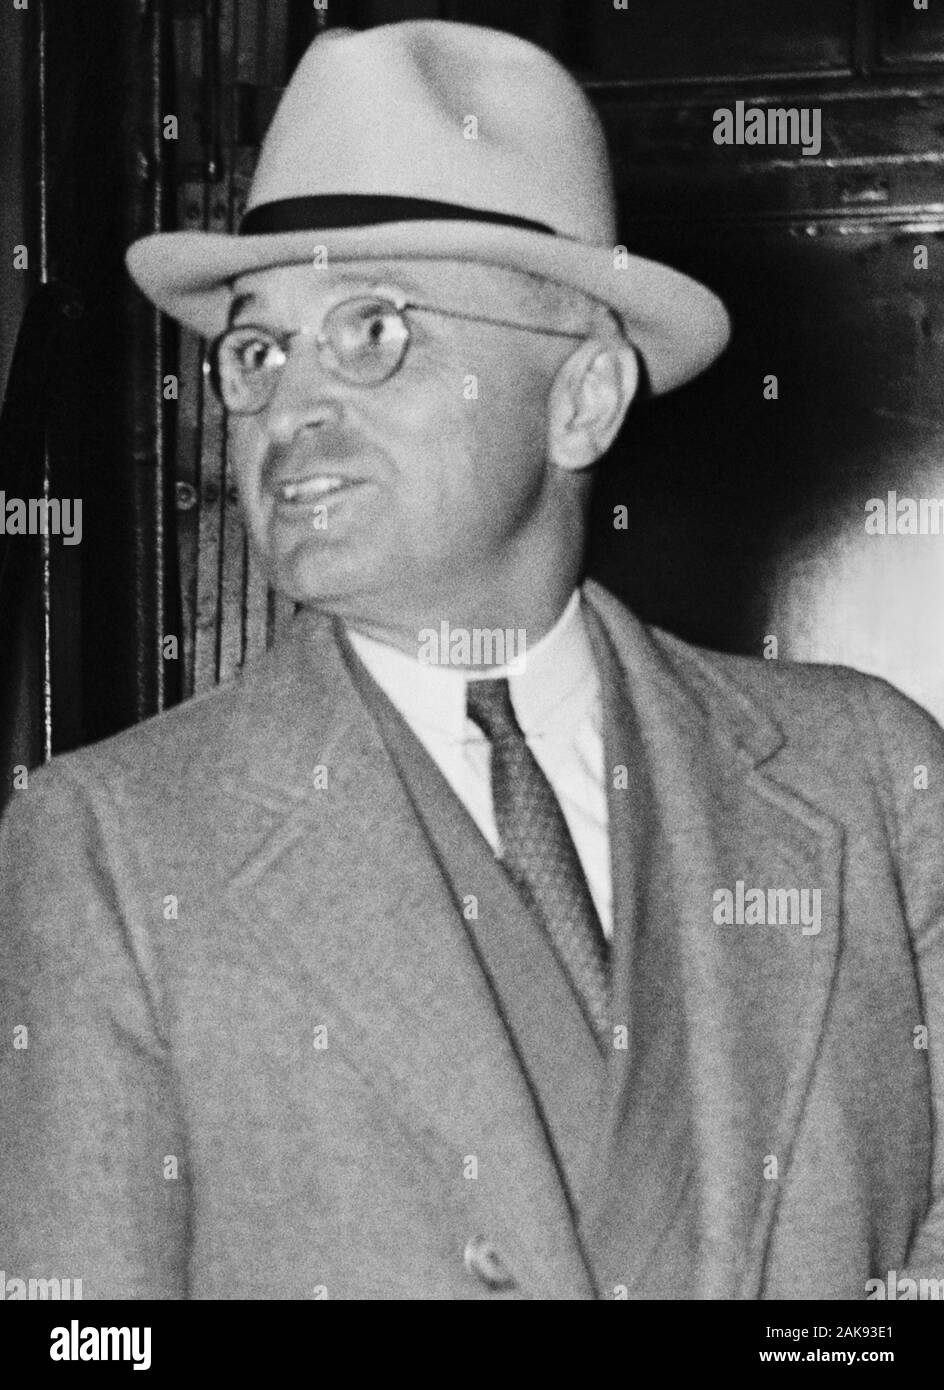 Harry Truman Photograph Vintage Photo from 1945